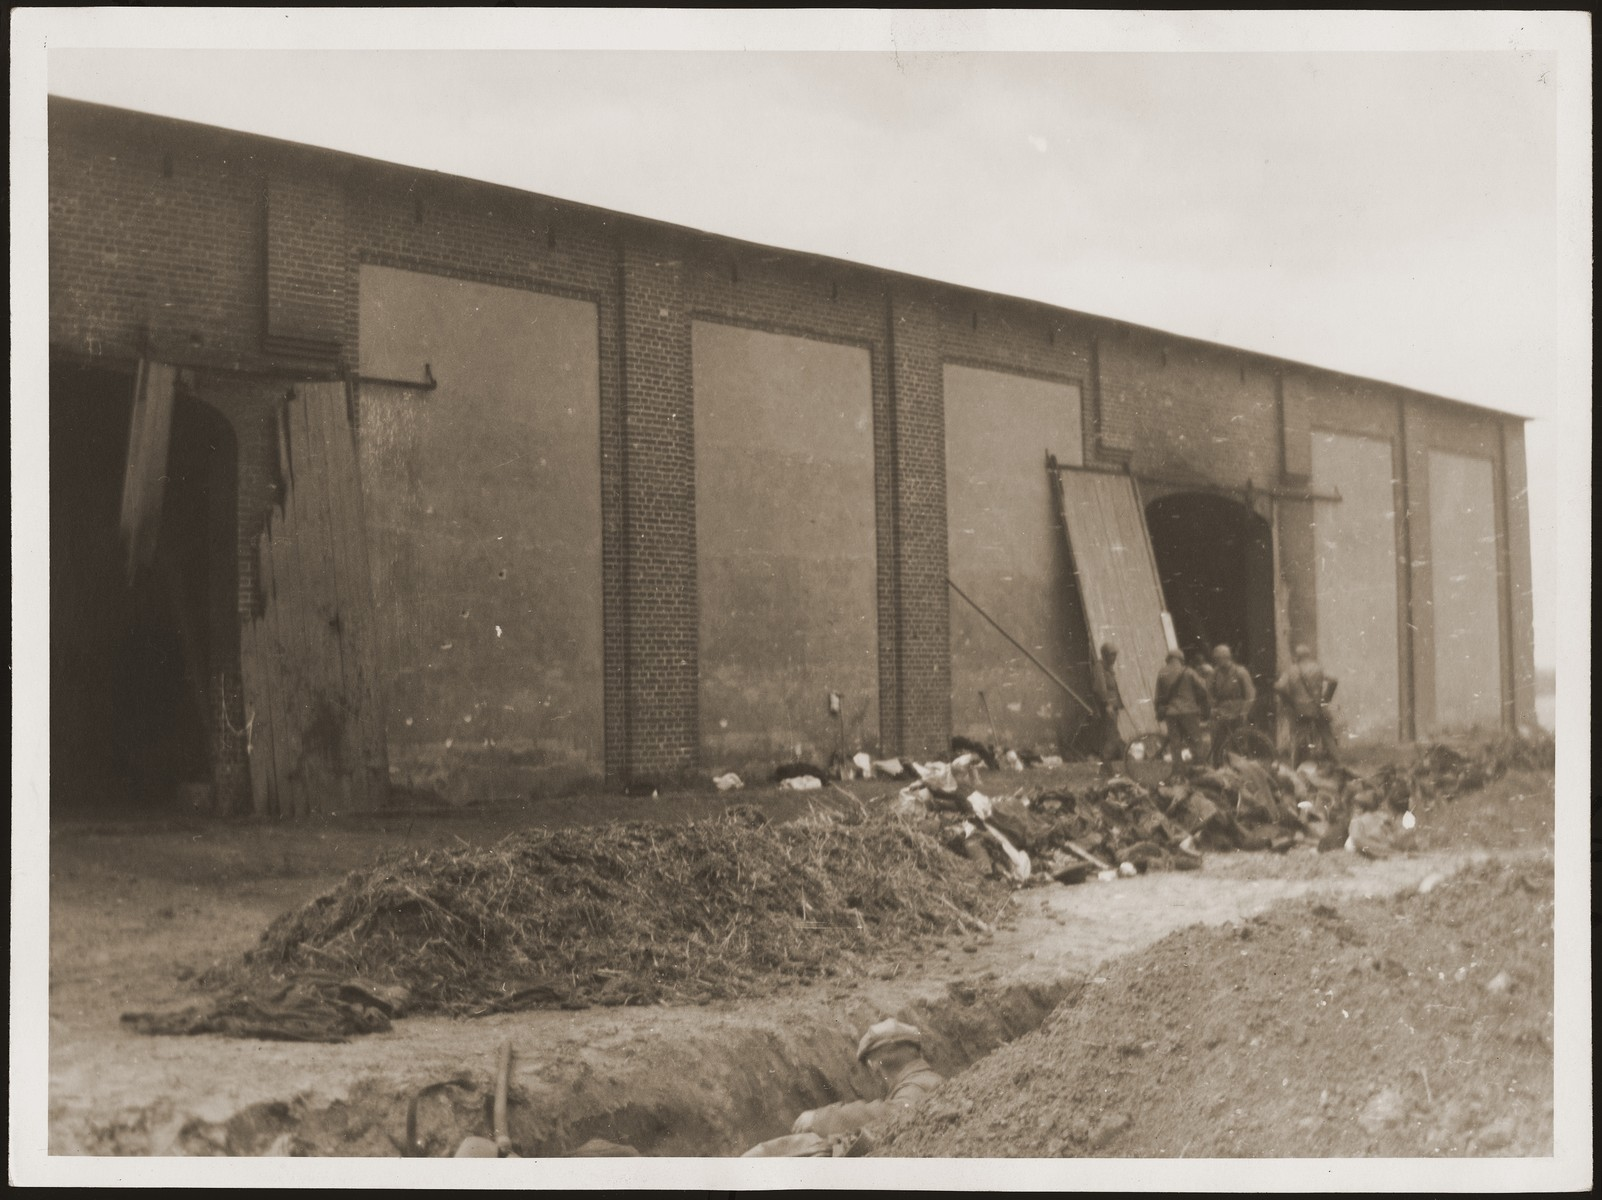 American soldiers stand in front of the barn in which concentration camp prisoners were burned alive by the SS.  German civilians exhume a mass grave in the foreground.